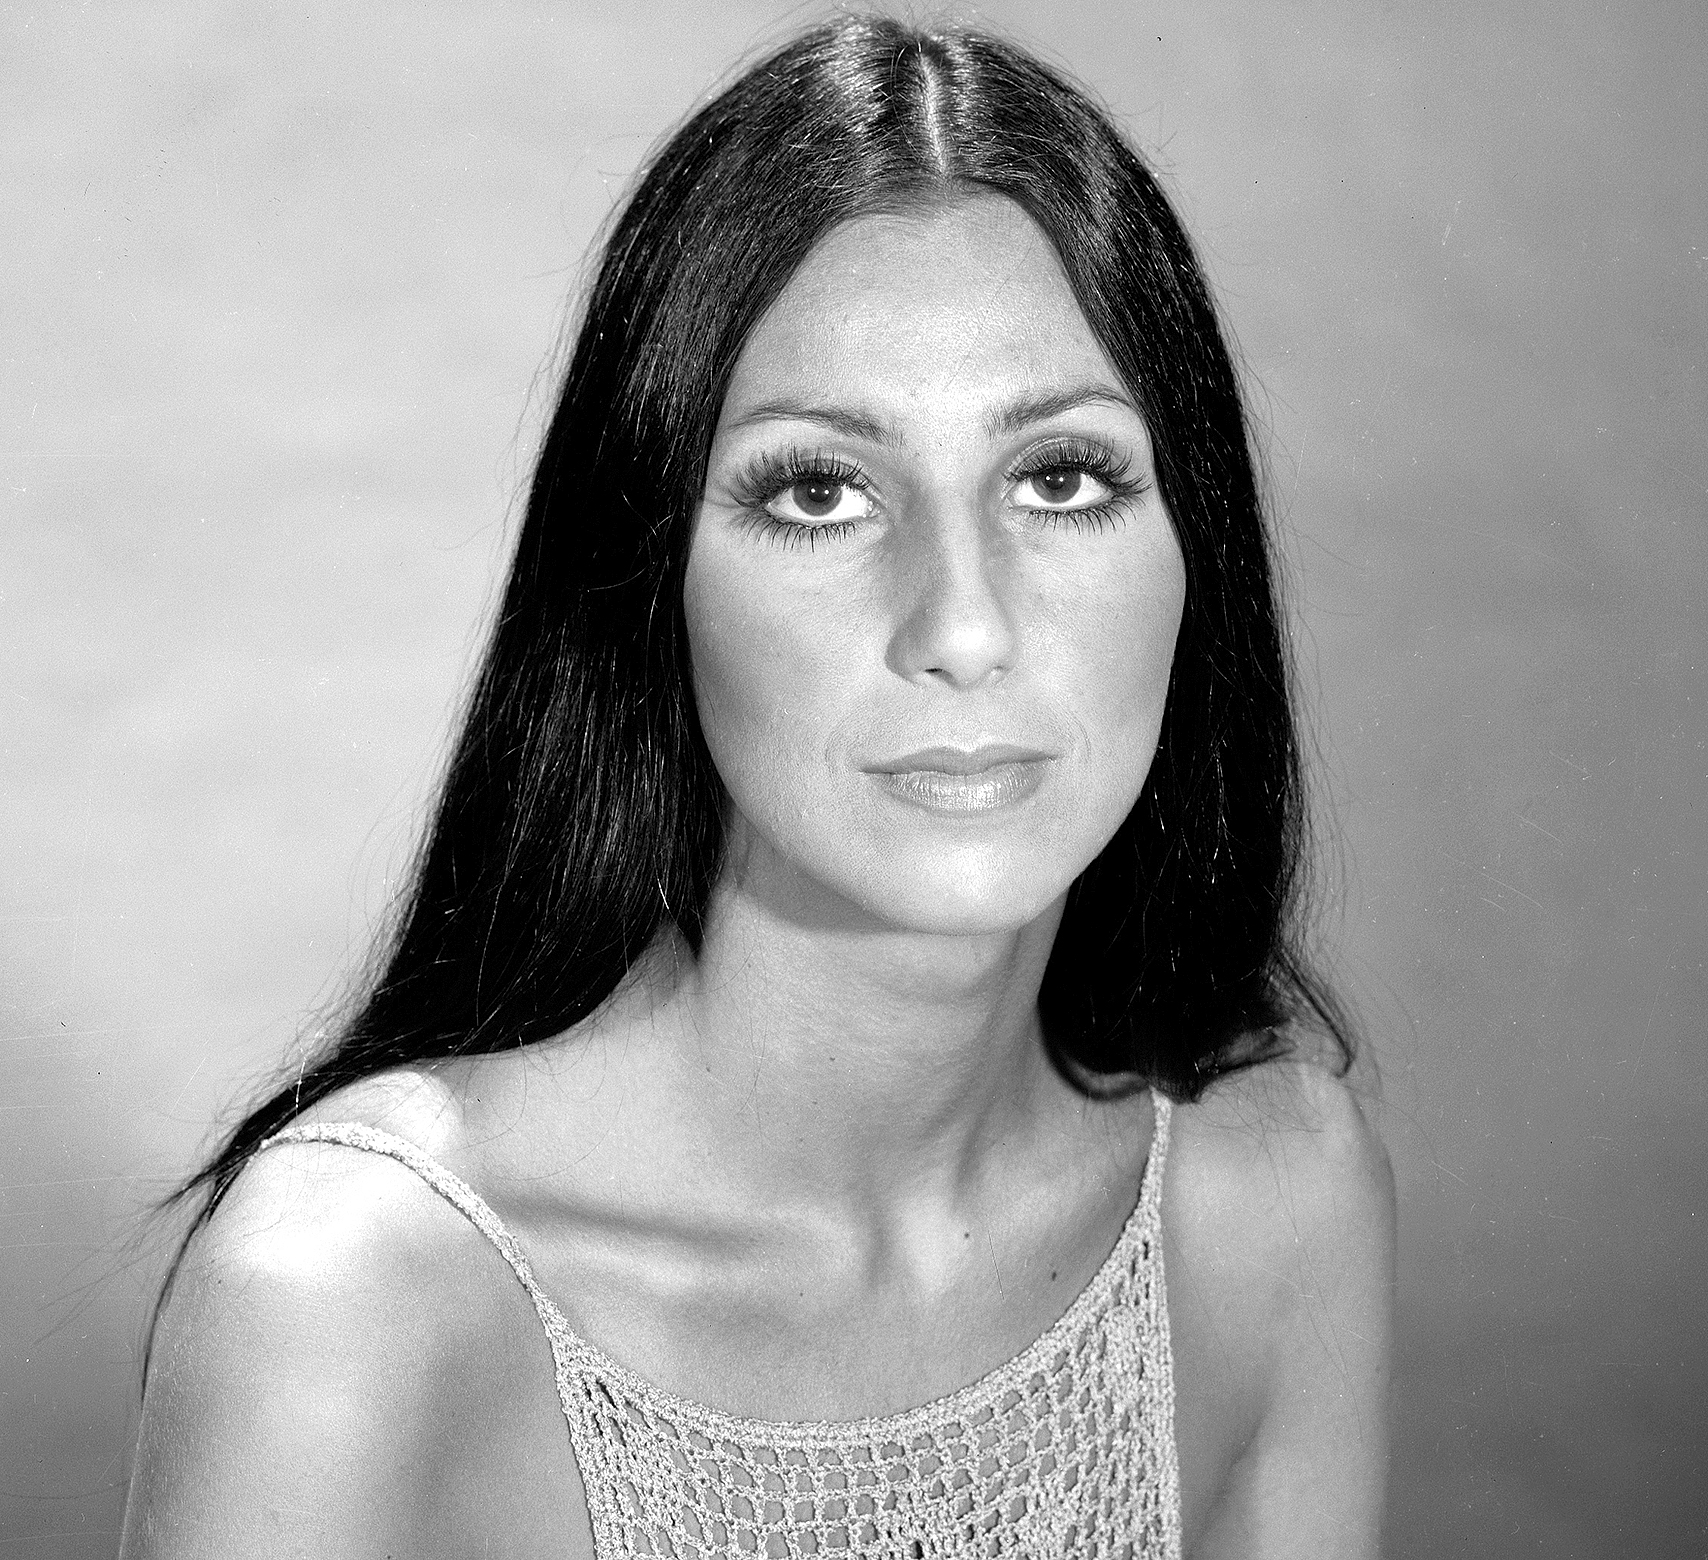 Cher for the television variety show 'The Sonny and Cher Comedy Hour,' June 7, 1970.